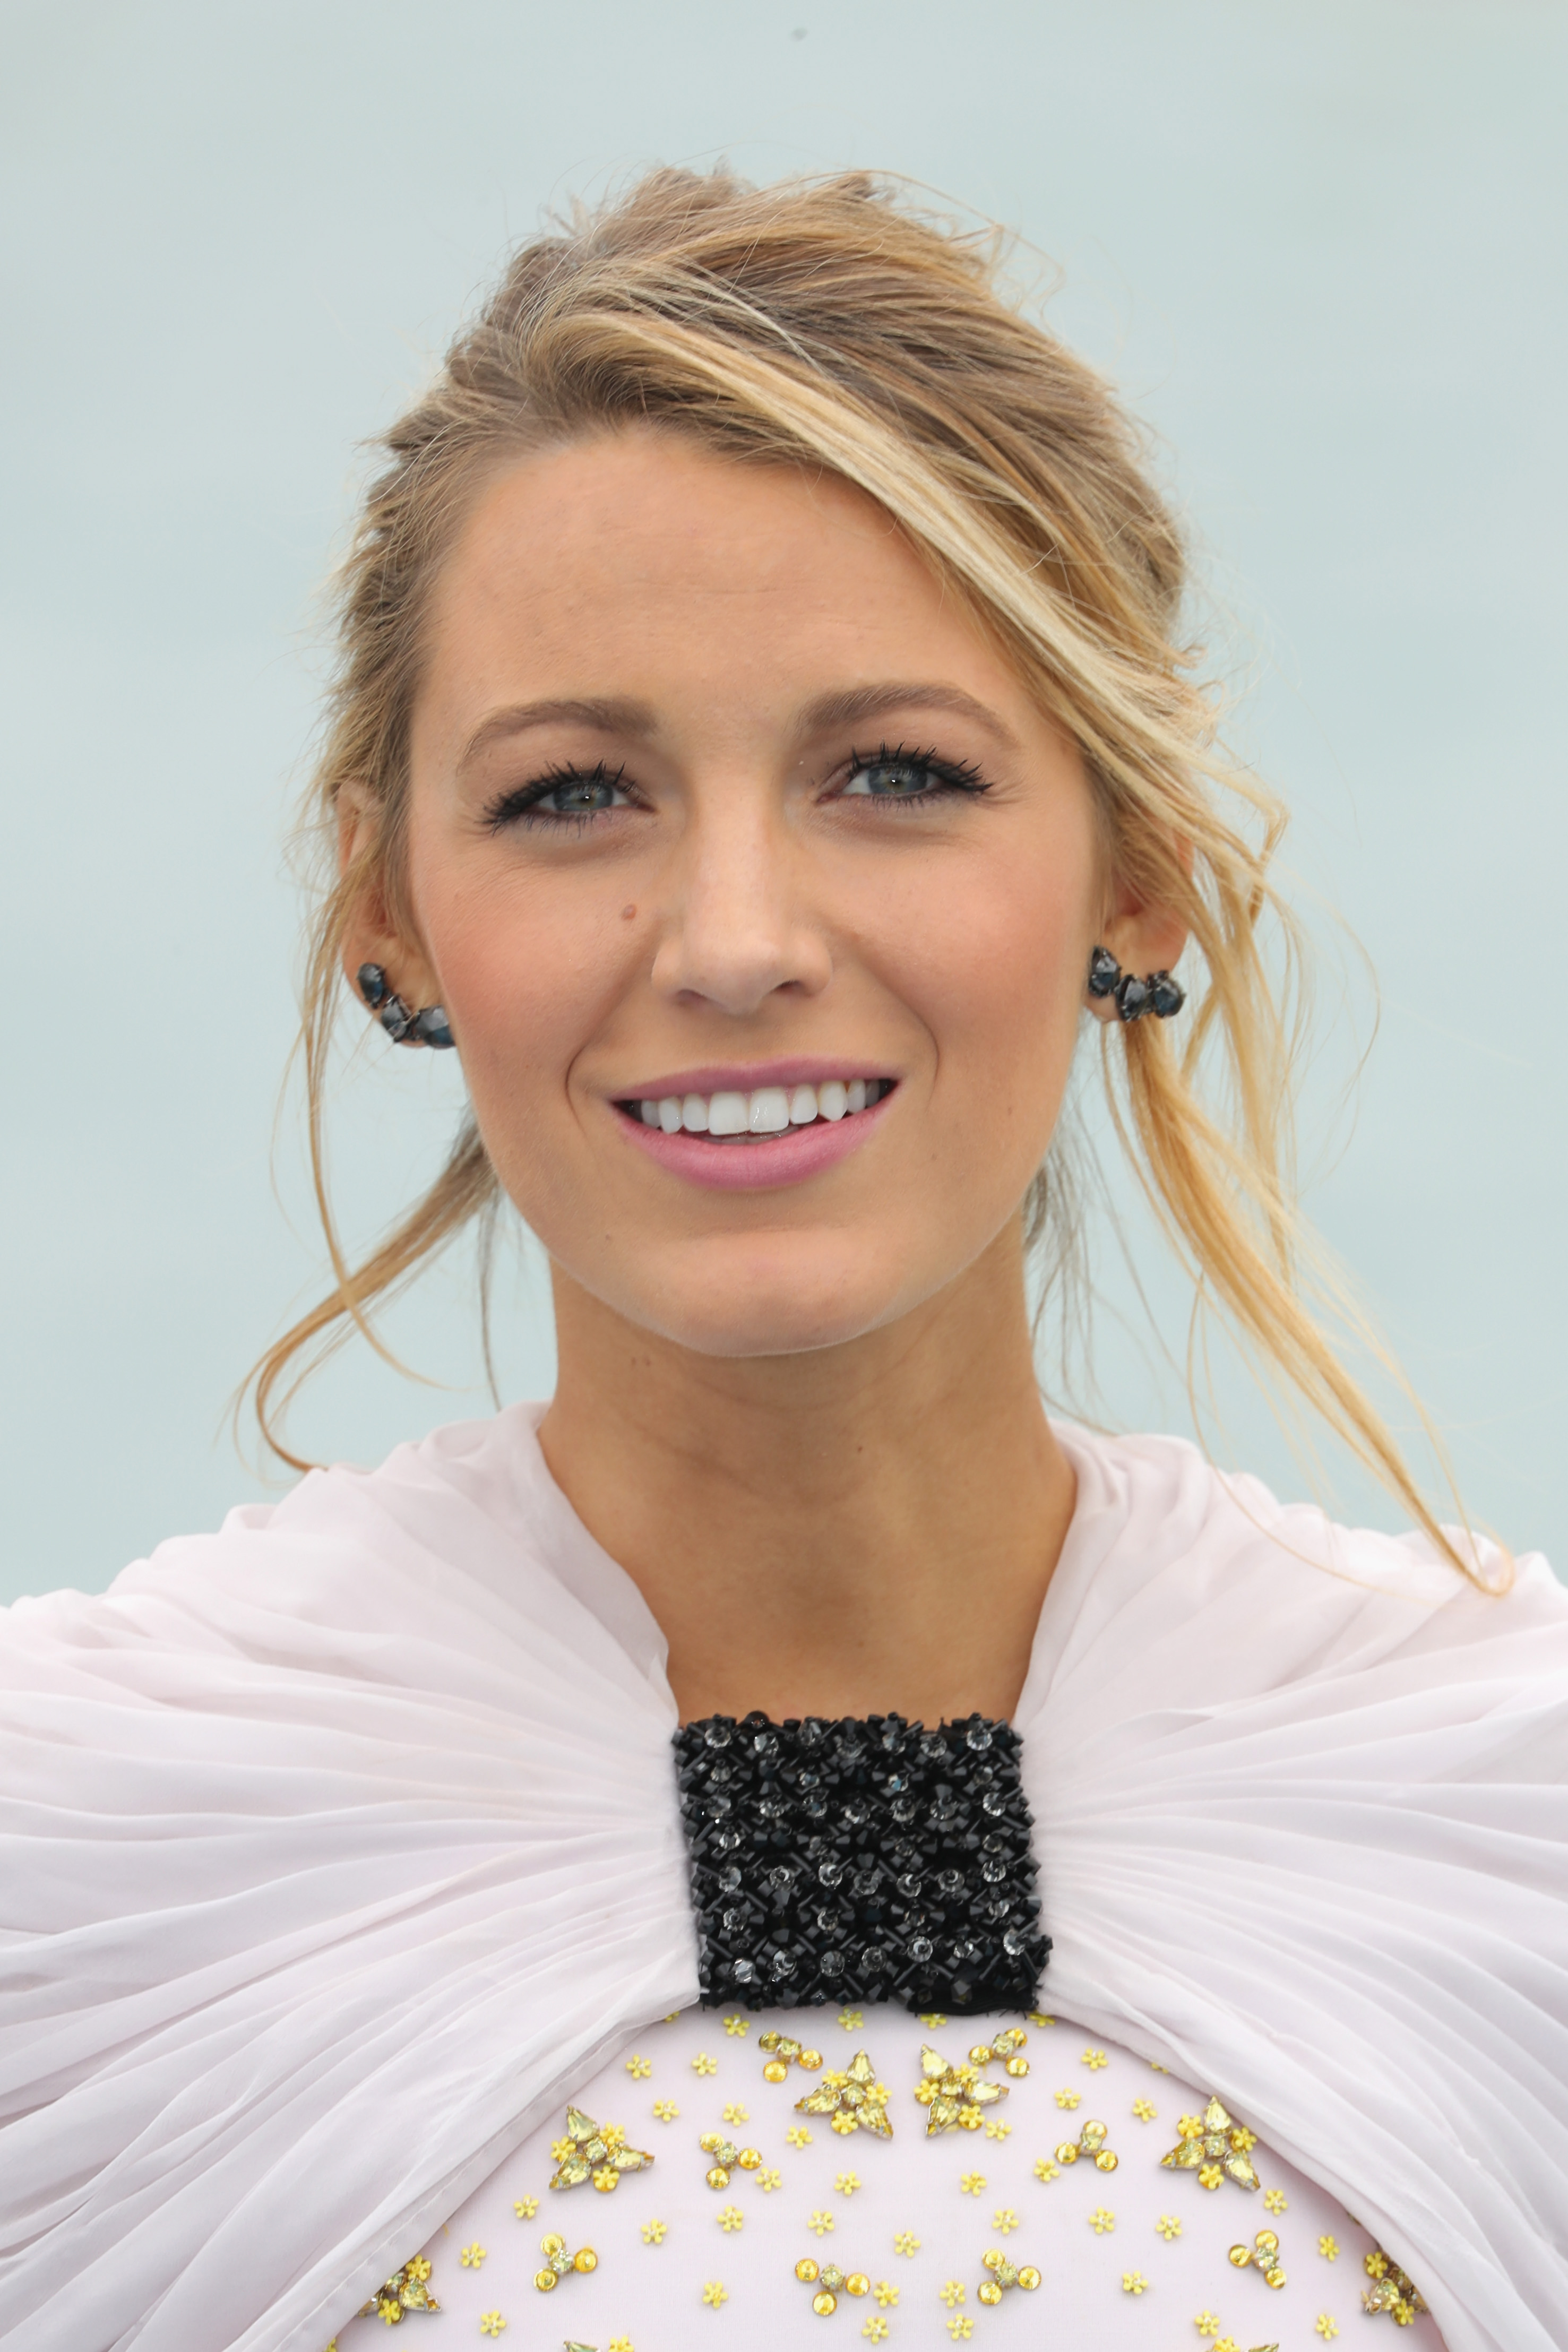 pics Whoa Blake Lively Was Just Cast in a Major Film